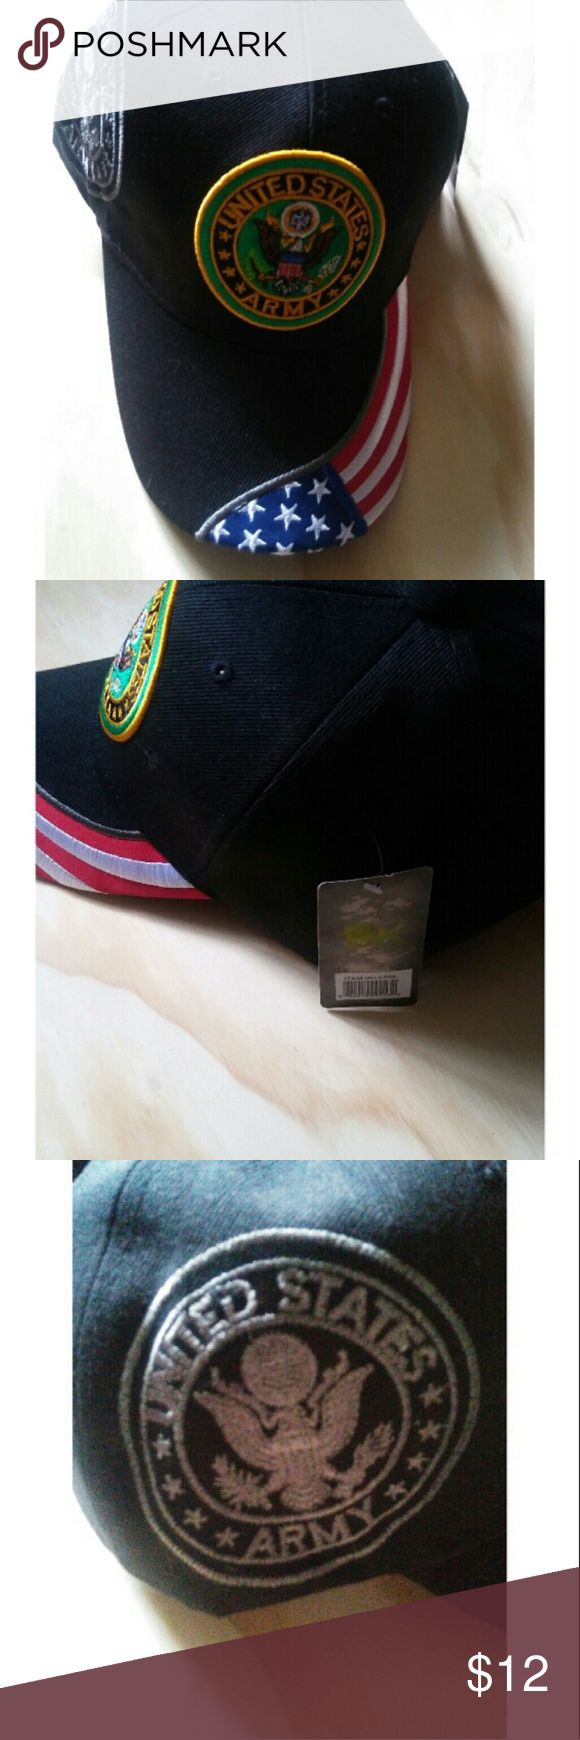 NWT Army hat 🇺🇸 NWT Army hat. Velcro back strap. Would make a great gift! 🇺🇸Happy poshing! 💜🌻✌ Accessories Hats